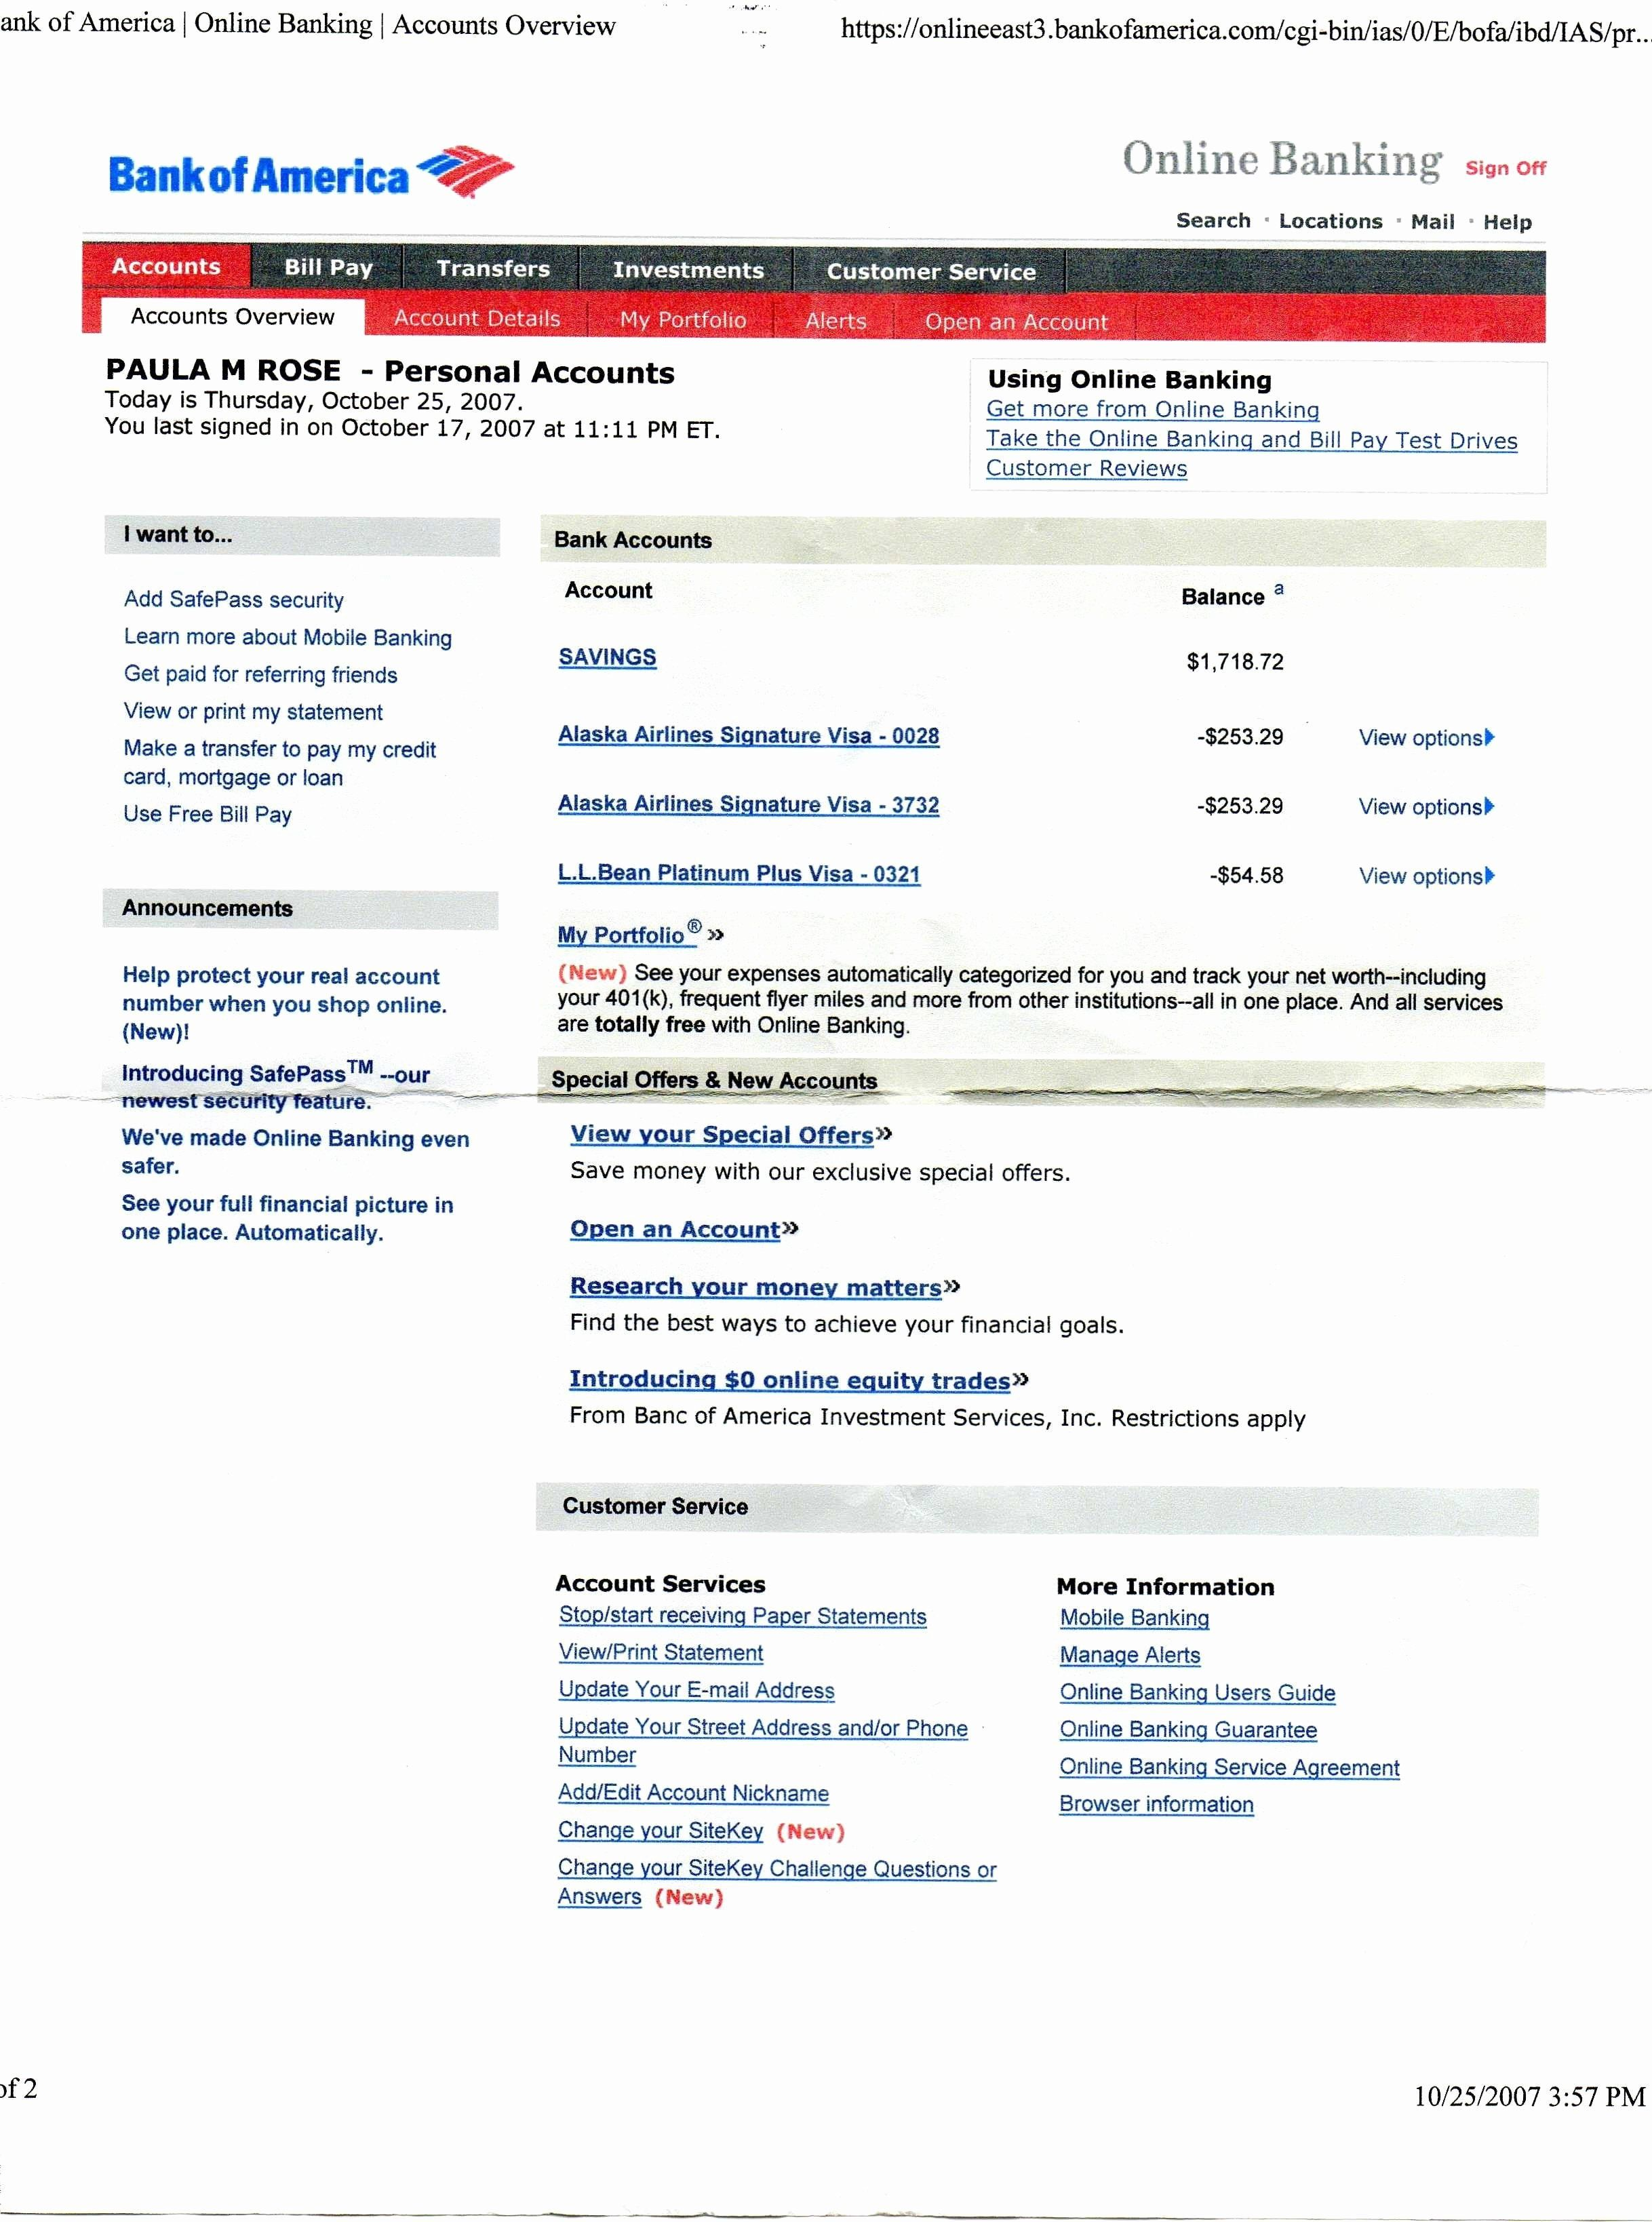 Bank Of America Statement Template Awesome Unique Bank America Statement Template Download In 2020 Statement Template Bank Of America Money Template